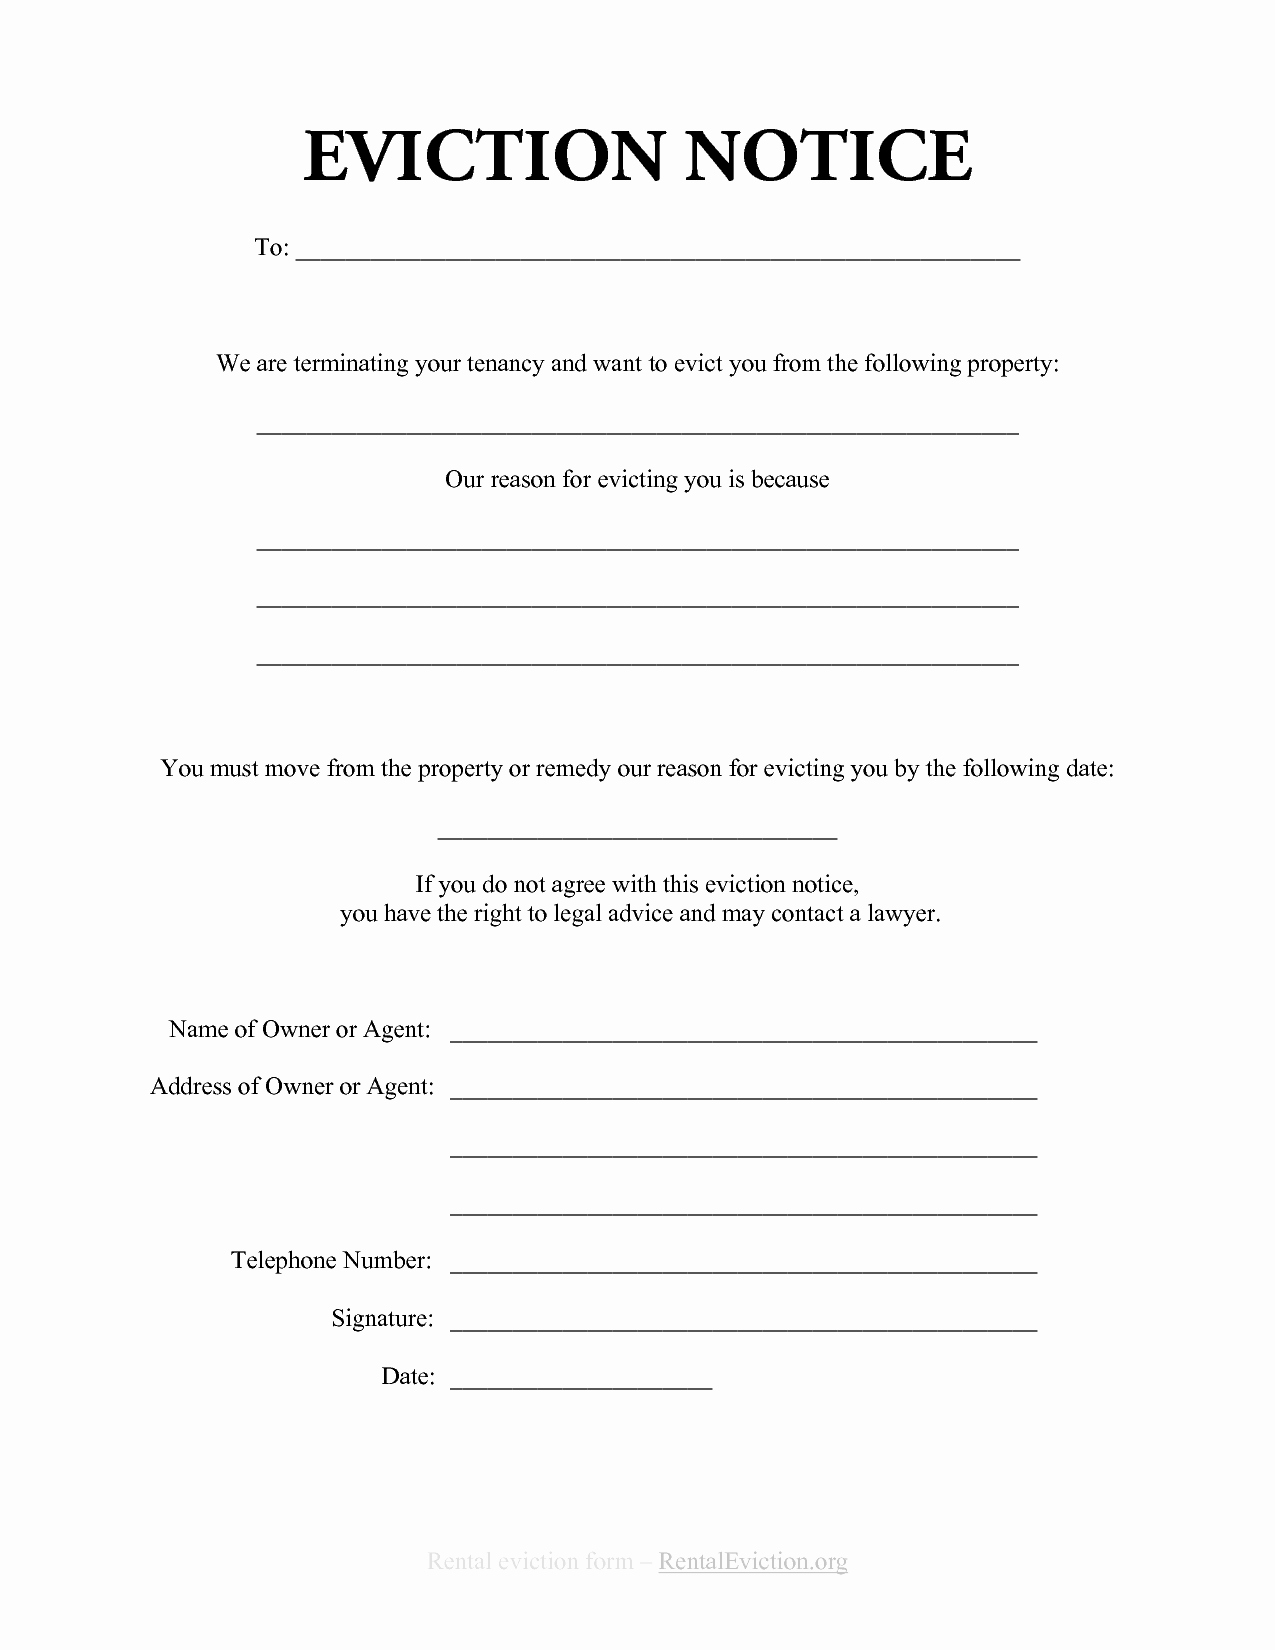 Free Print Out Eviction Notices